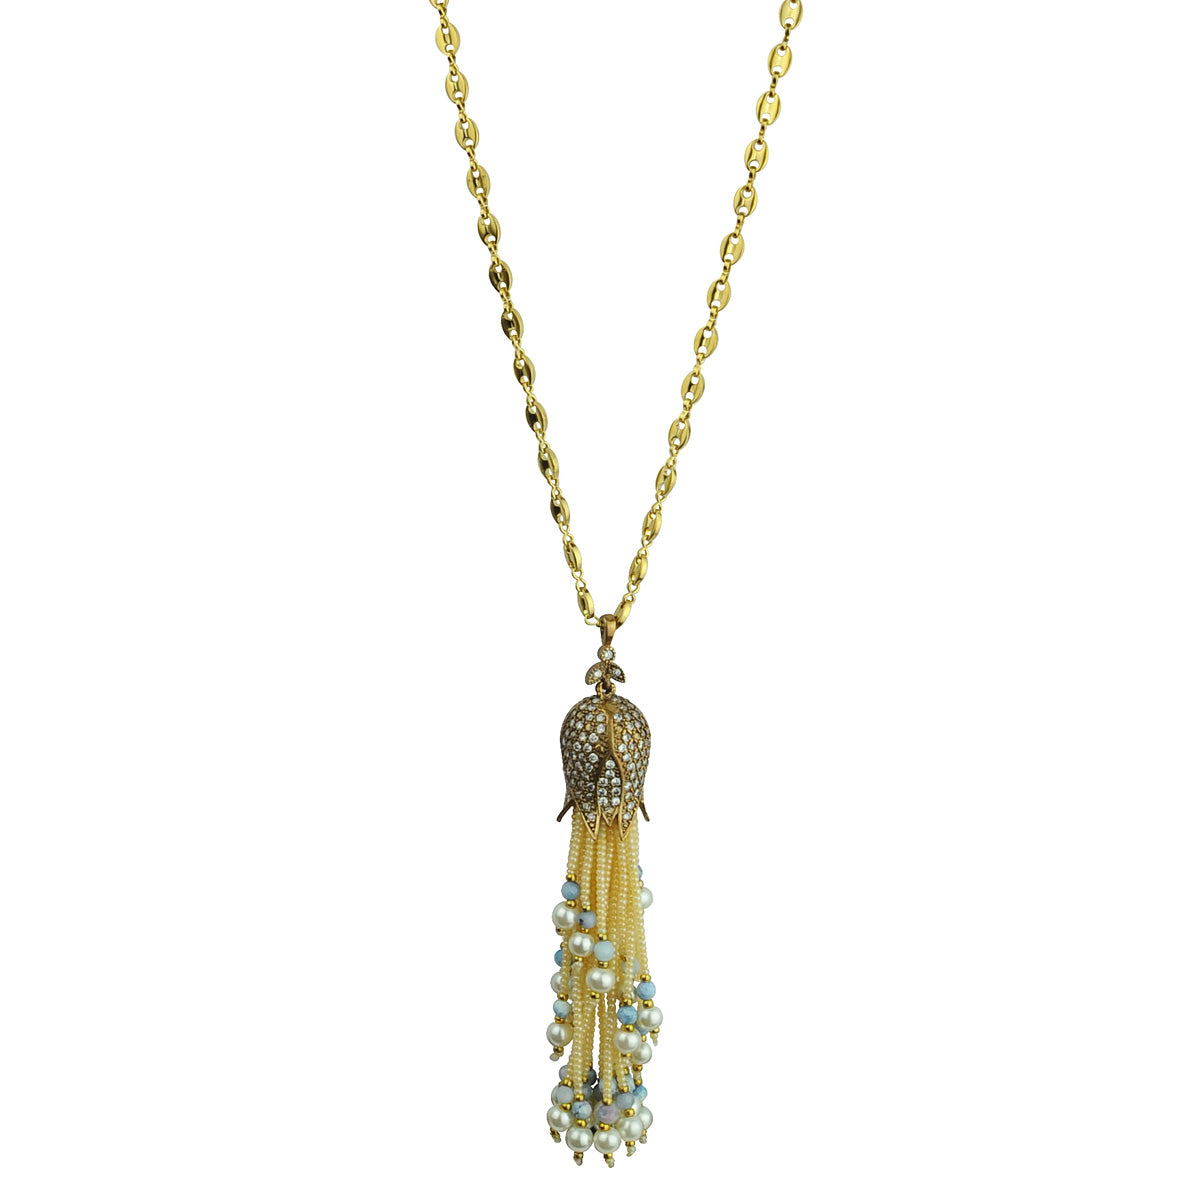 Pearl Tassel with chain Long Necklace katerina psoma